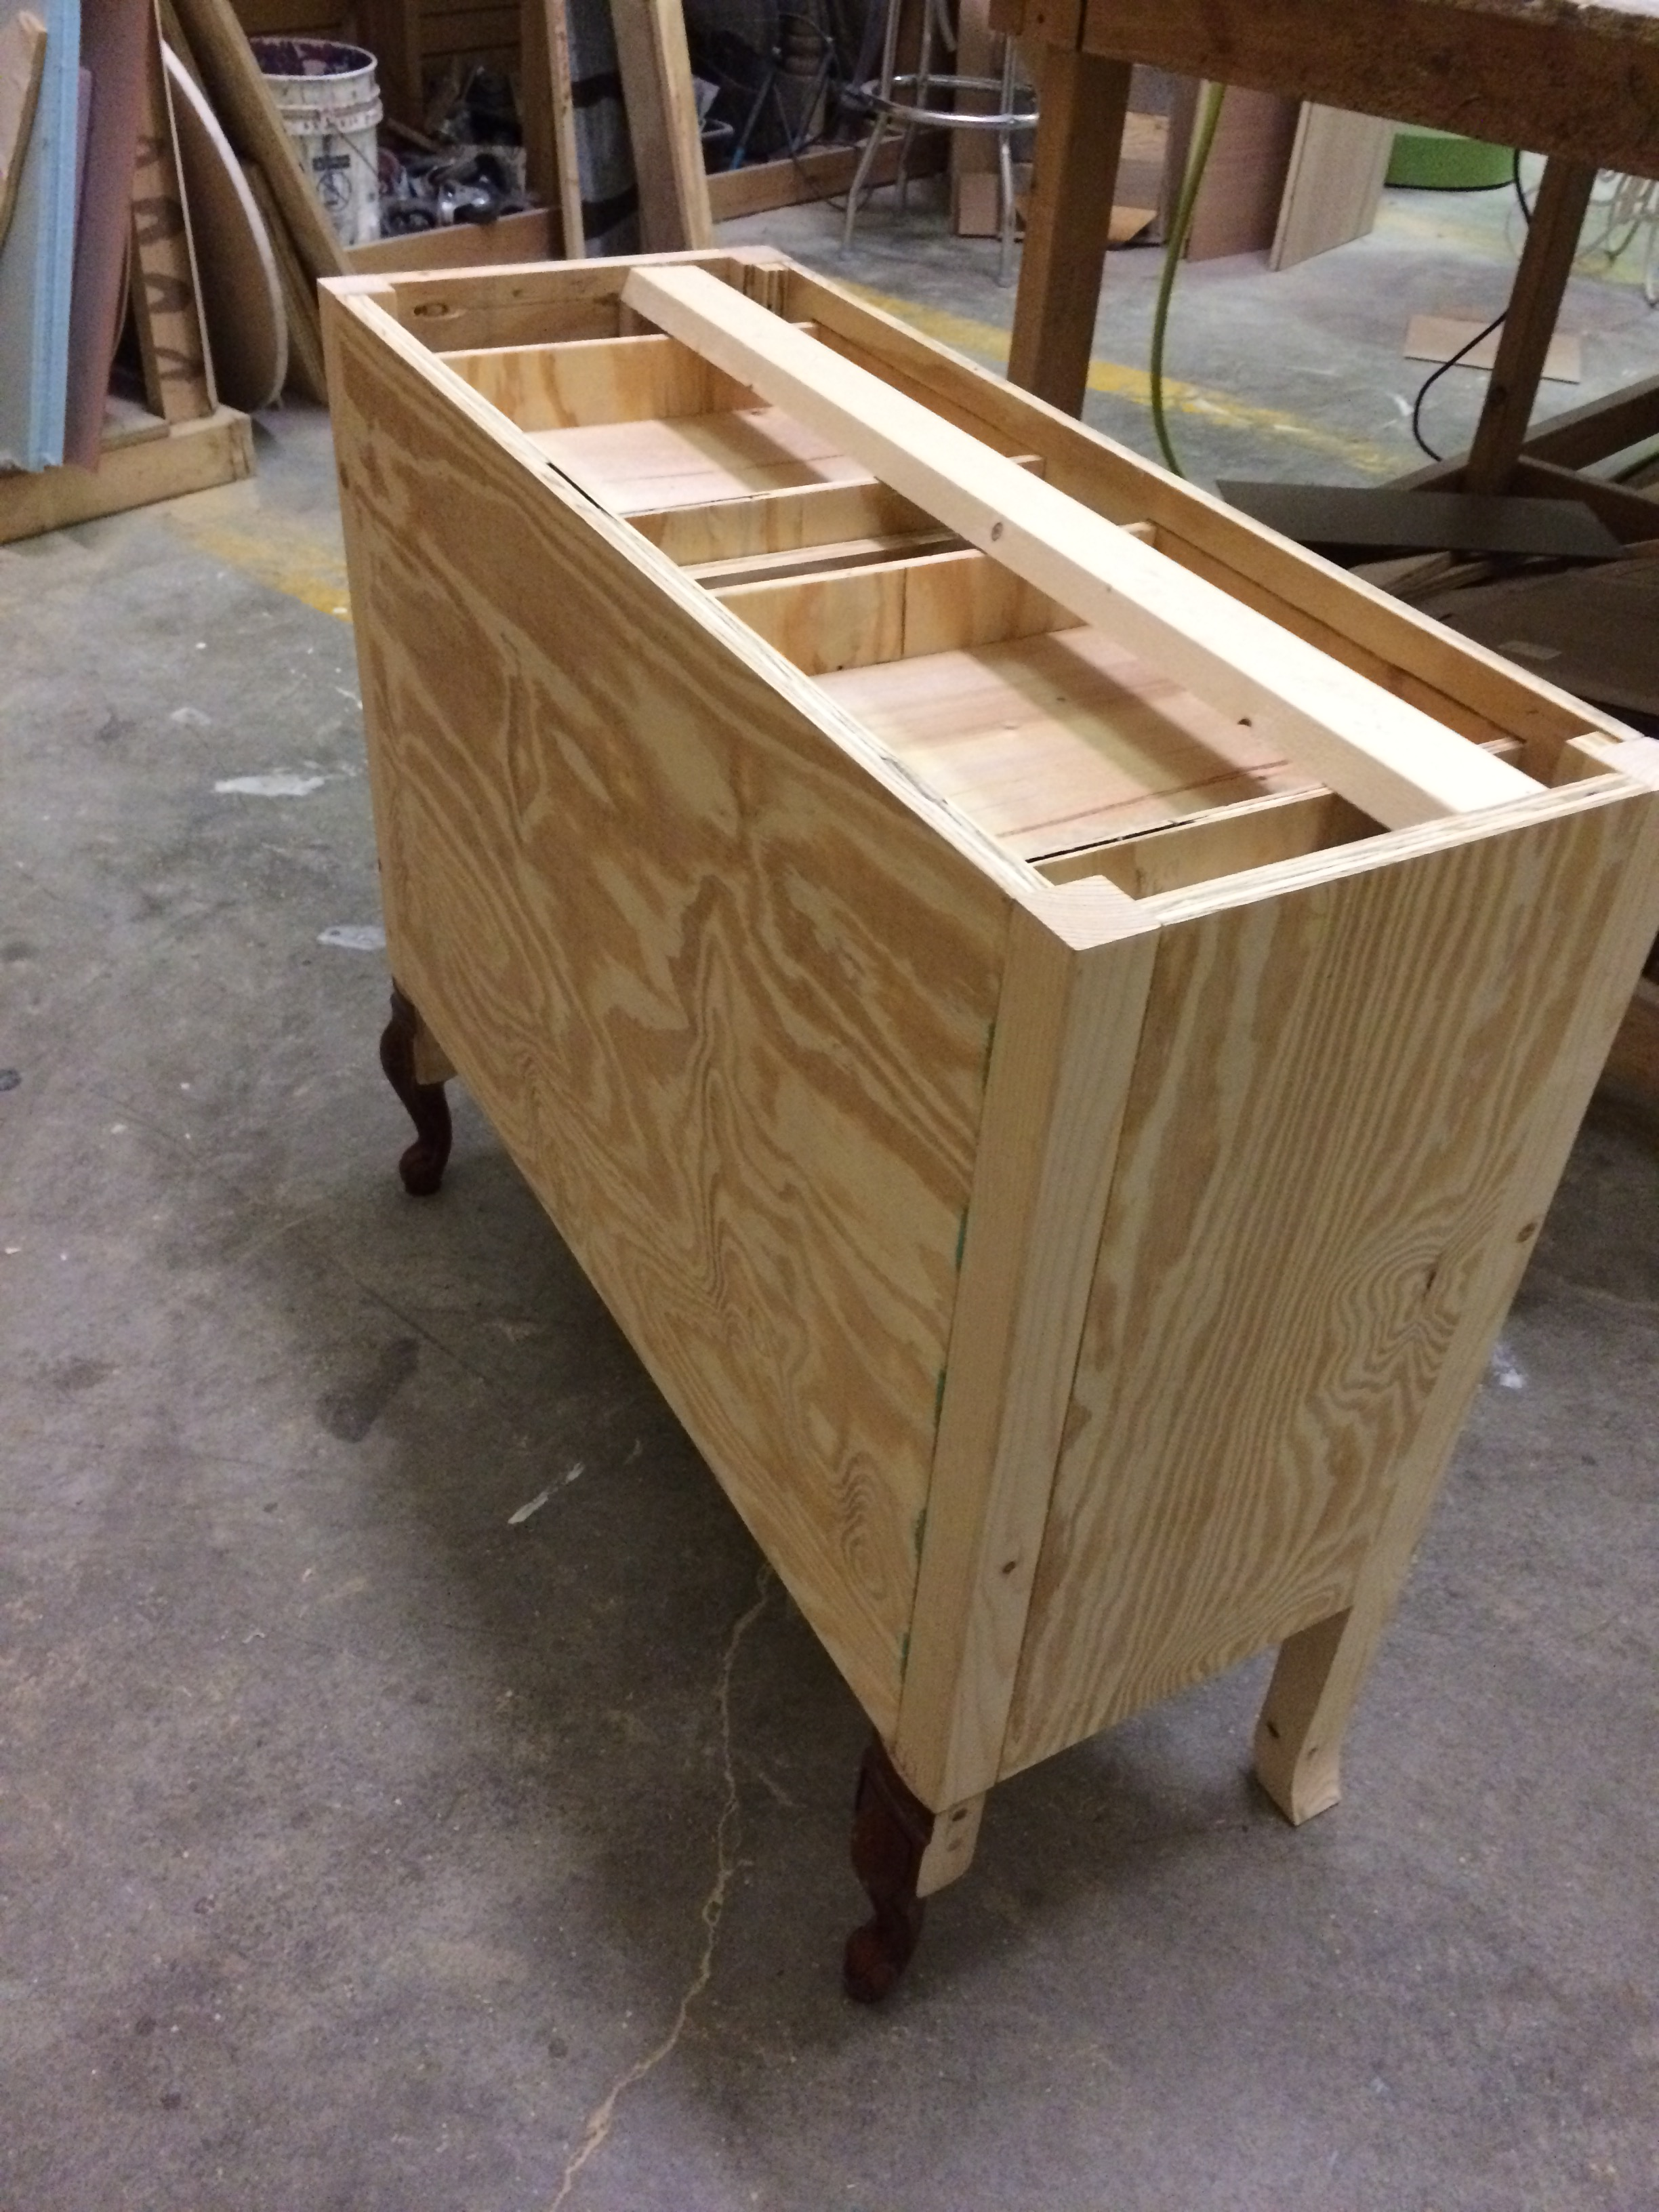 Top interior of drawers